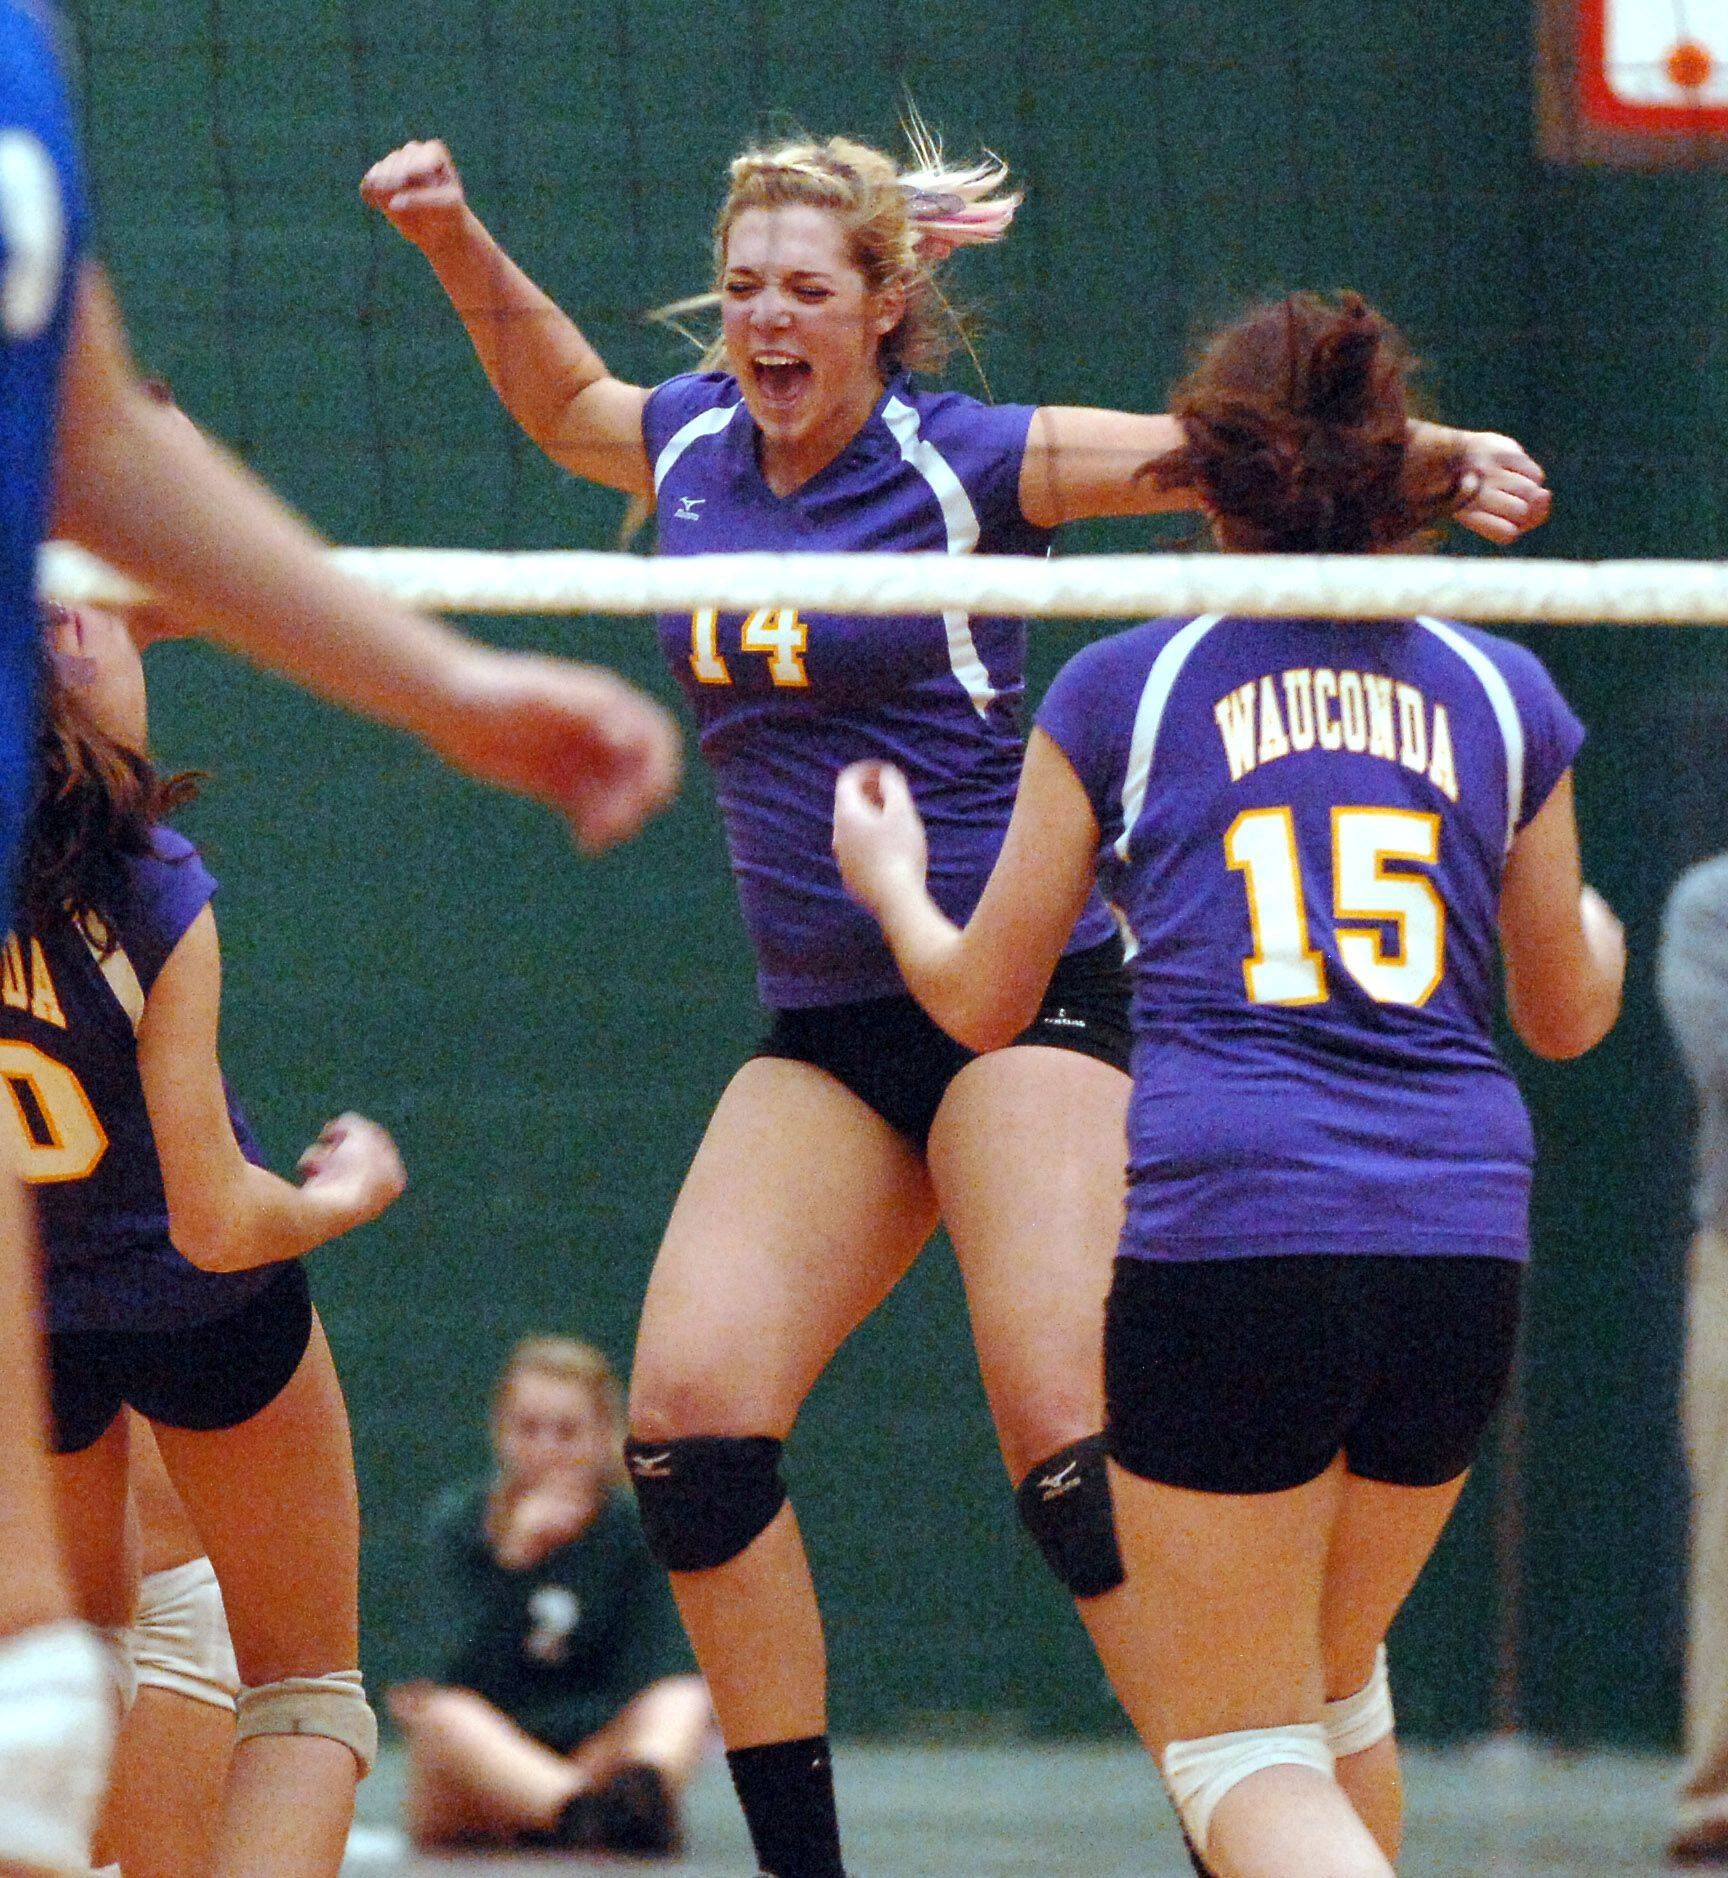 Wauconda's Erinn Hellweg, 14, celebrates a point with teammate Emily Holub, 15, during their sectional match against Vernon Hills Tuesday in Grayslake.